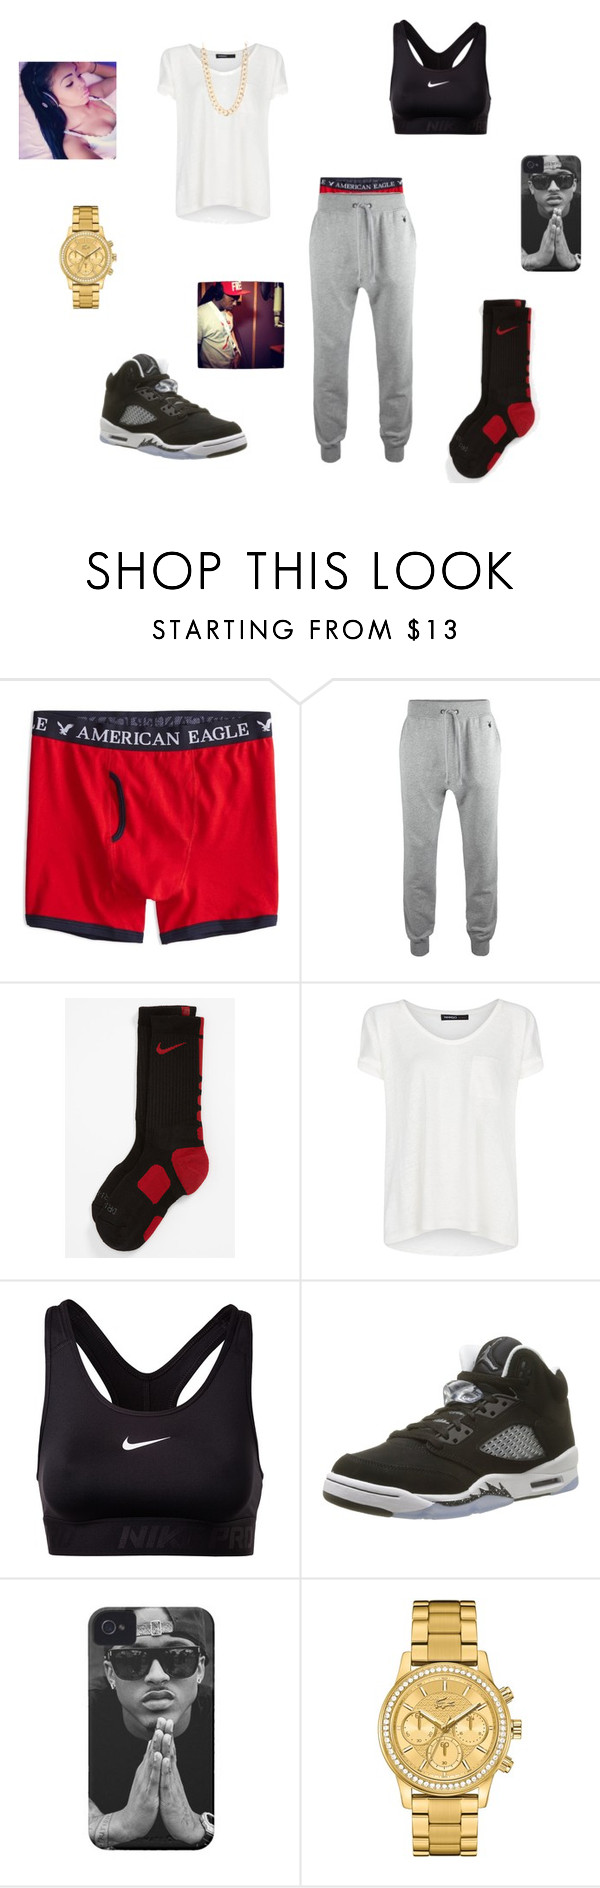 """""""They cant take whats mine, someone like me is hard to find"""" by shadysqueen ❤ liked on Polyvore featuring American Eagle Outfitters, AllSaints, NIKE, MANGO, Retrò, Lacoste and Jane Norman"""